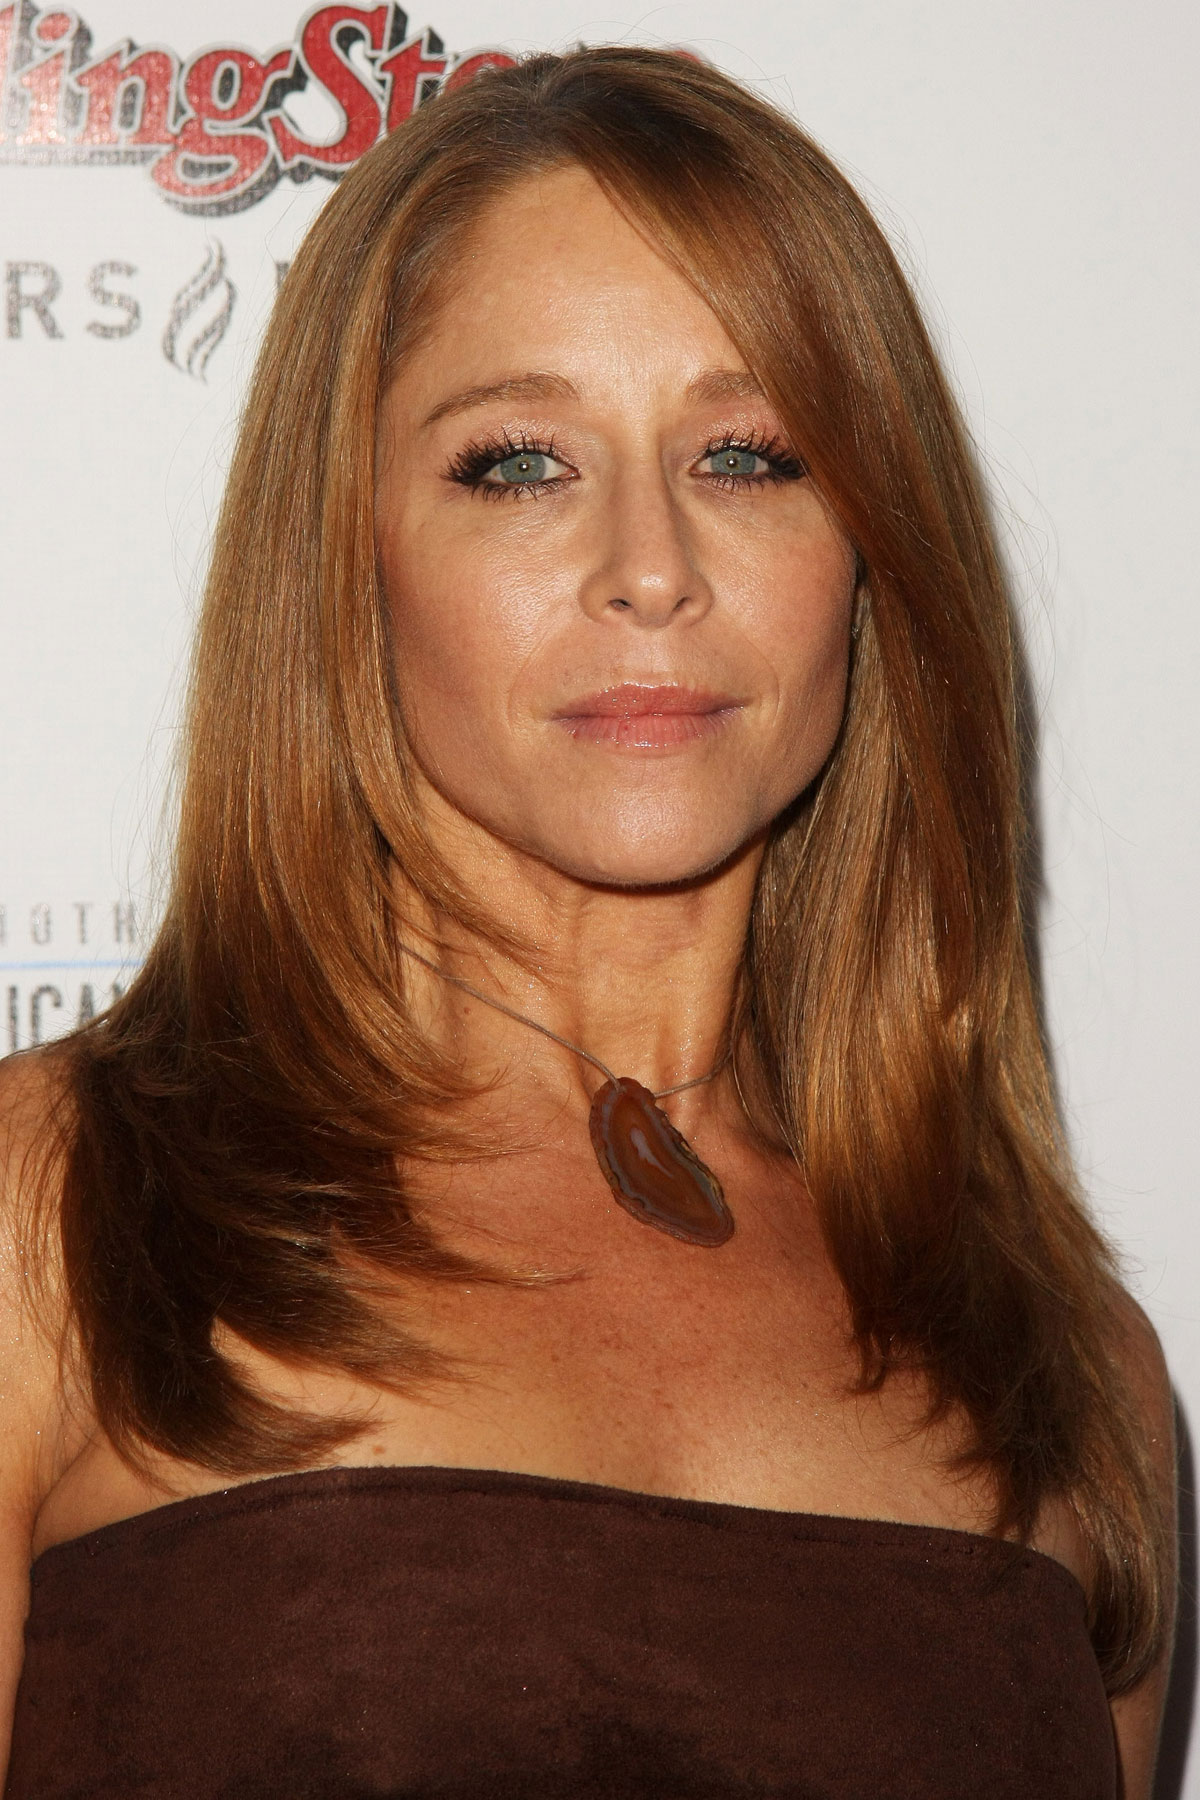 JAMIE LUNER at Rolling Stone Magazine AMA After-party in ...